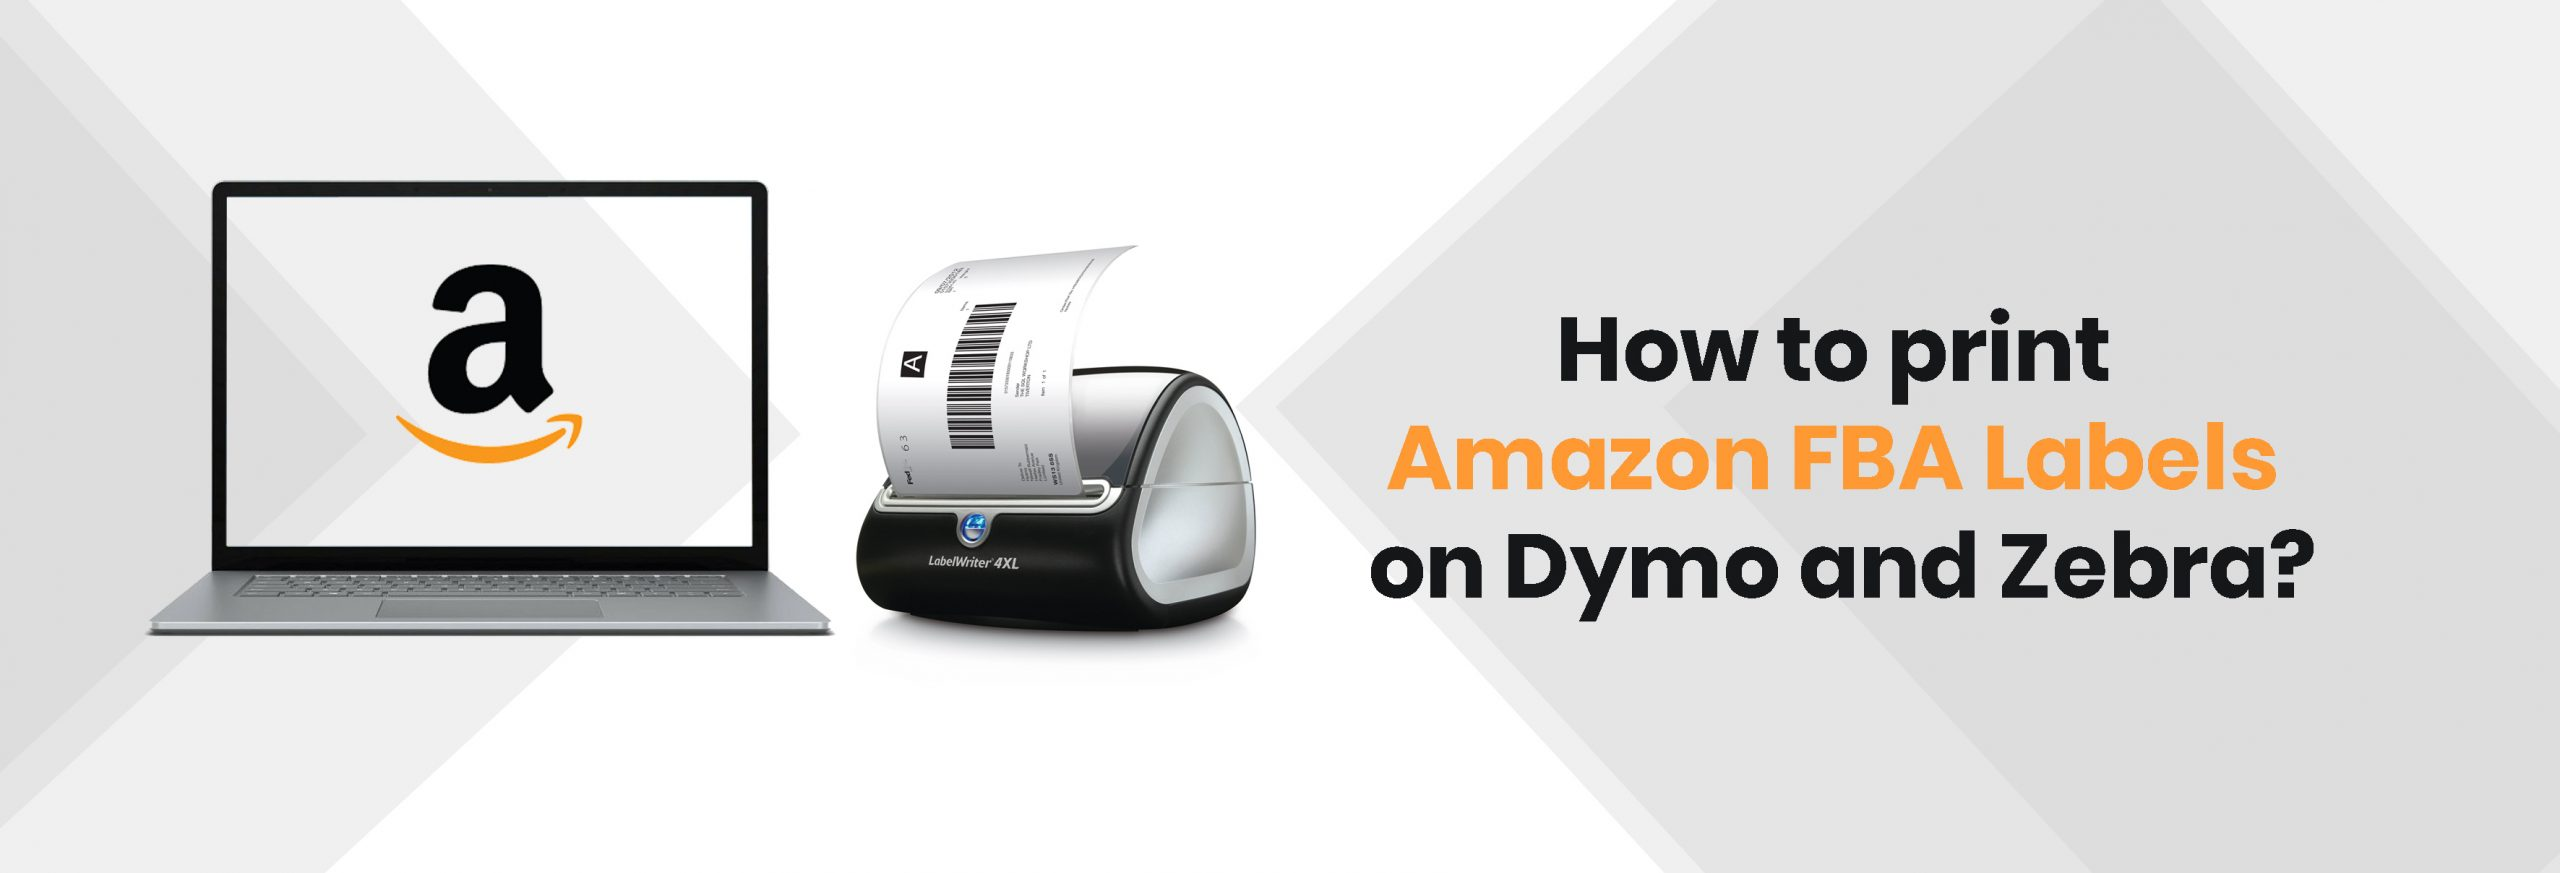 How to Print Amazon FBA Labels on Dymo and Zebra